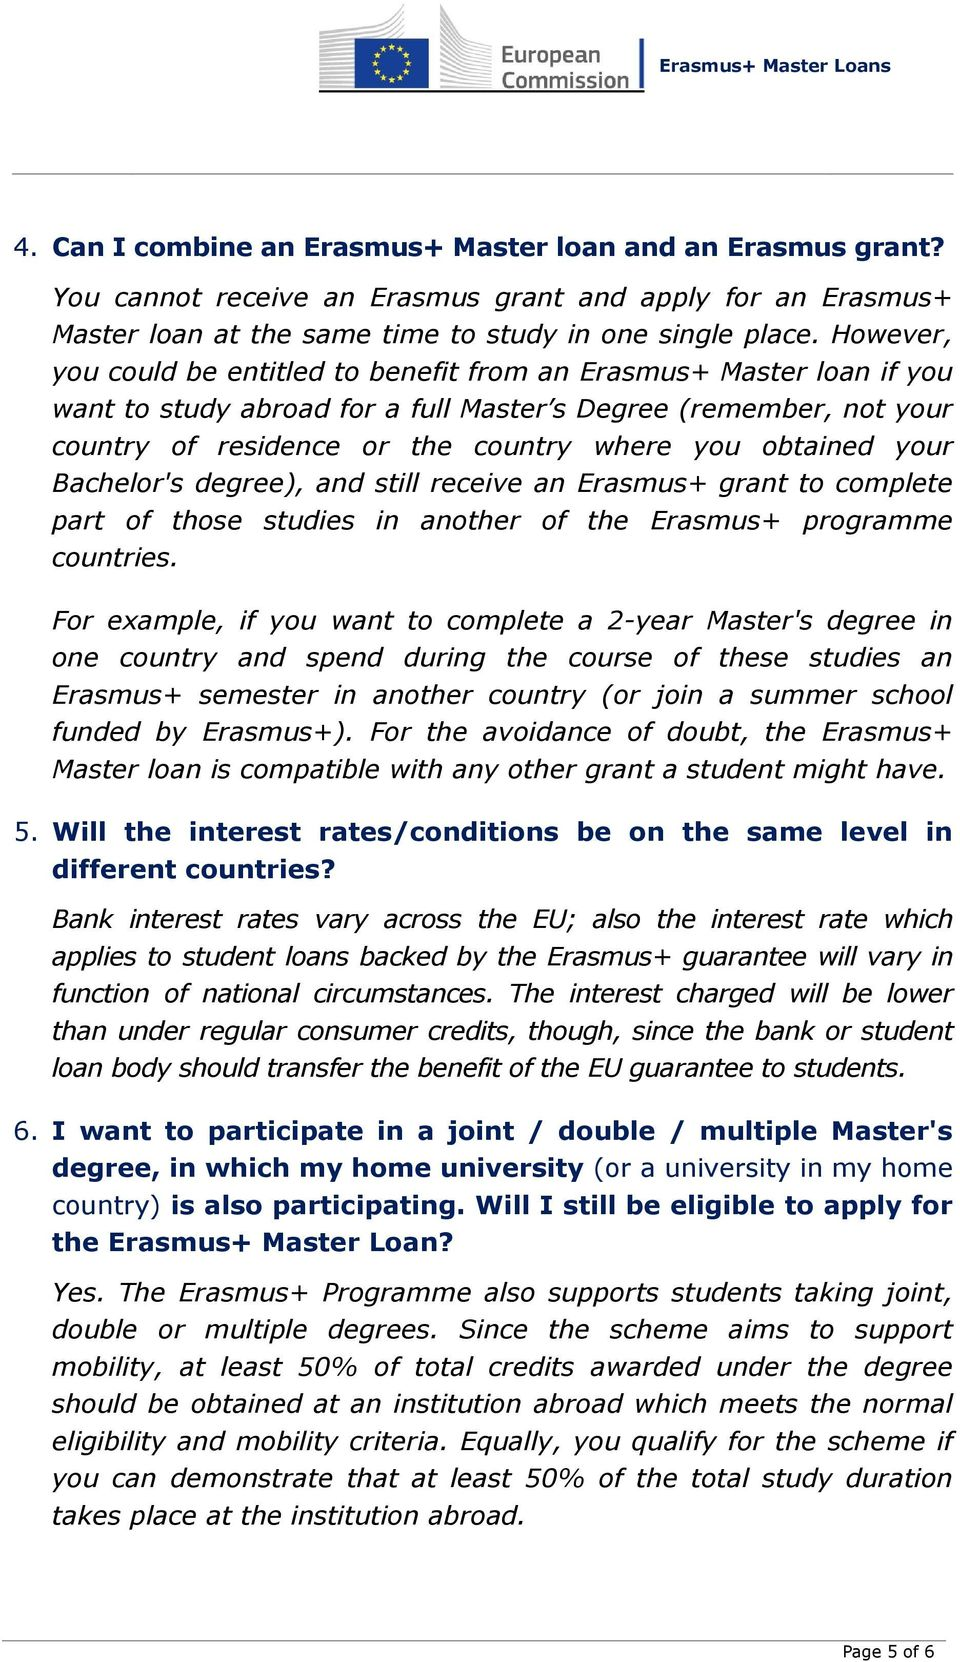 obtained your Bachelor's degree), and still receive an Erasmus+ grant to complete part of those studies in another of the Erasmus+ programme countries.